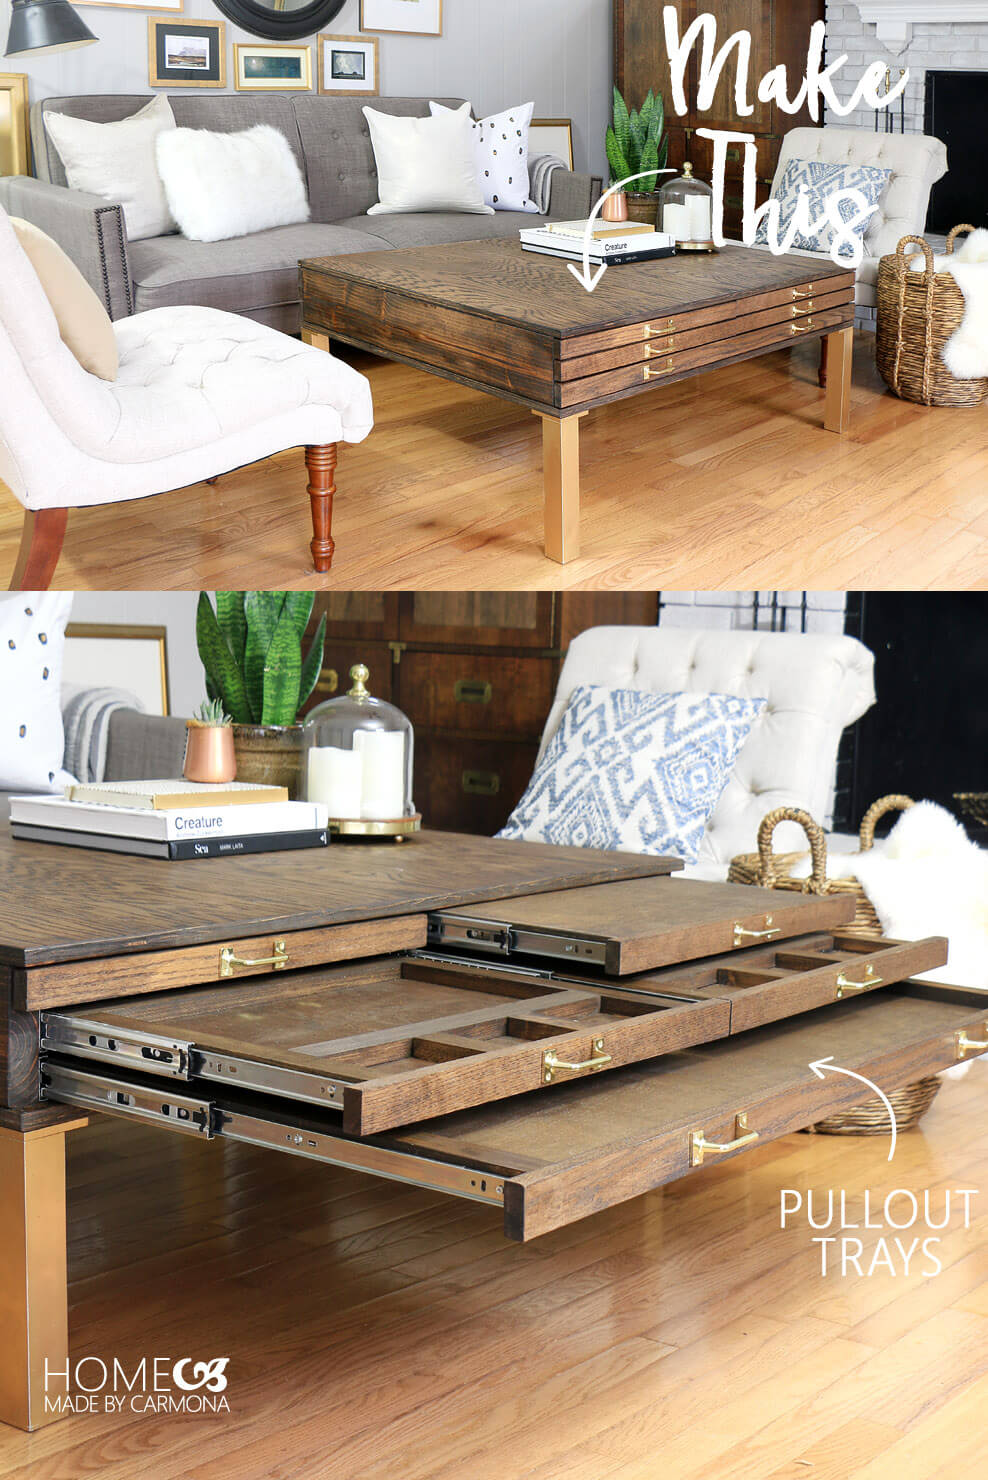 Make this DIY Coffee Table With Pullouts